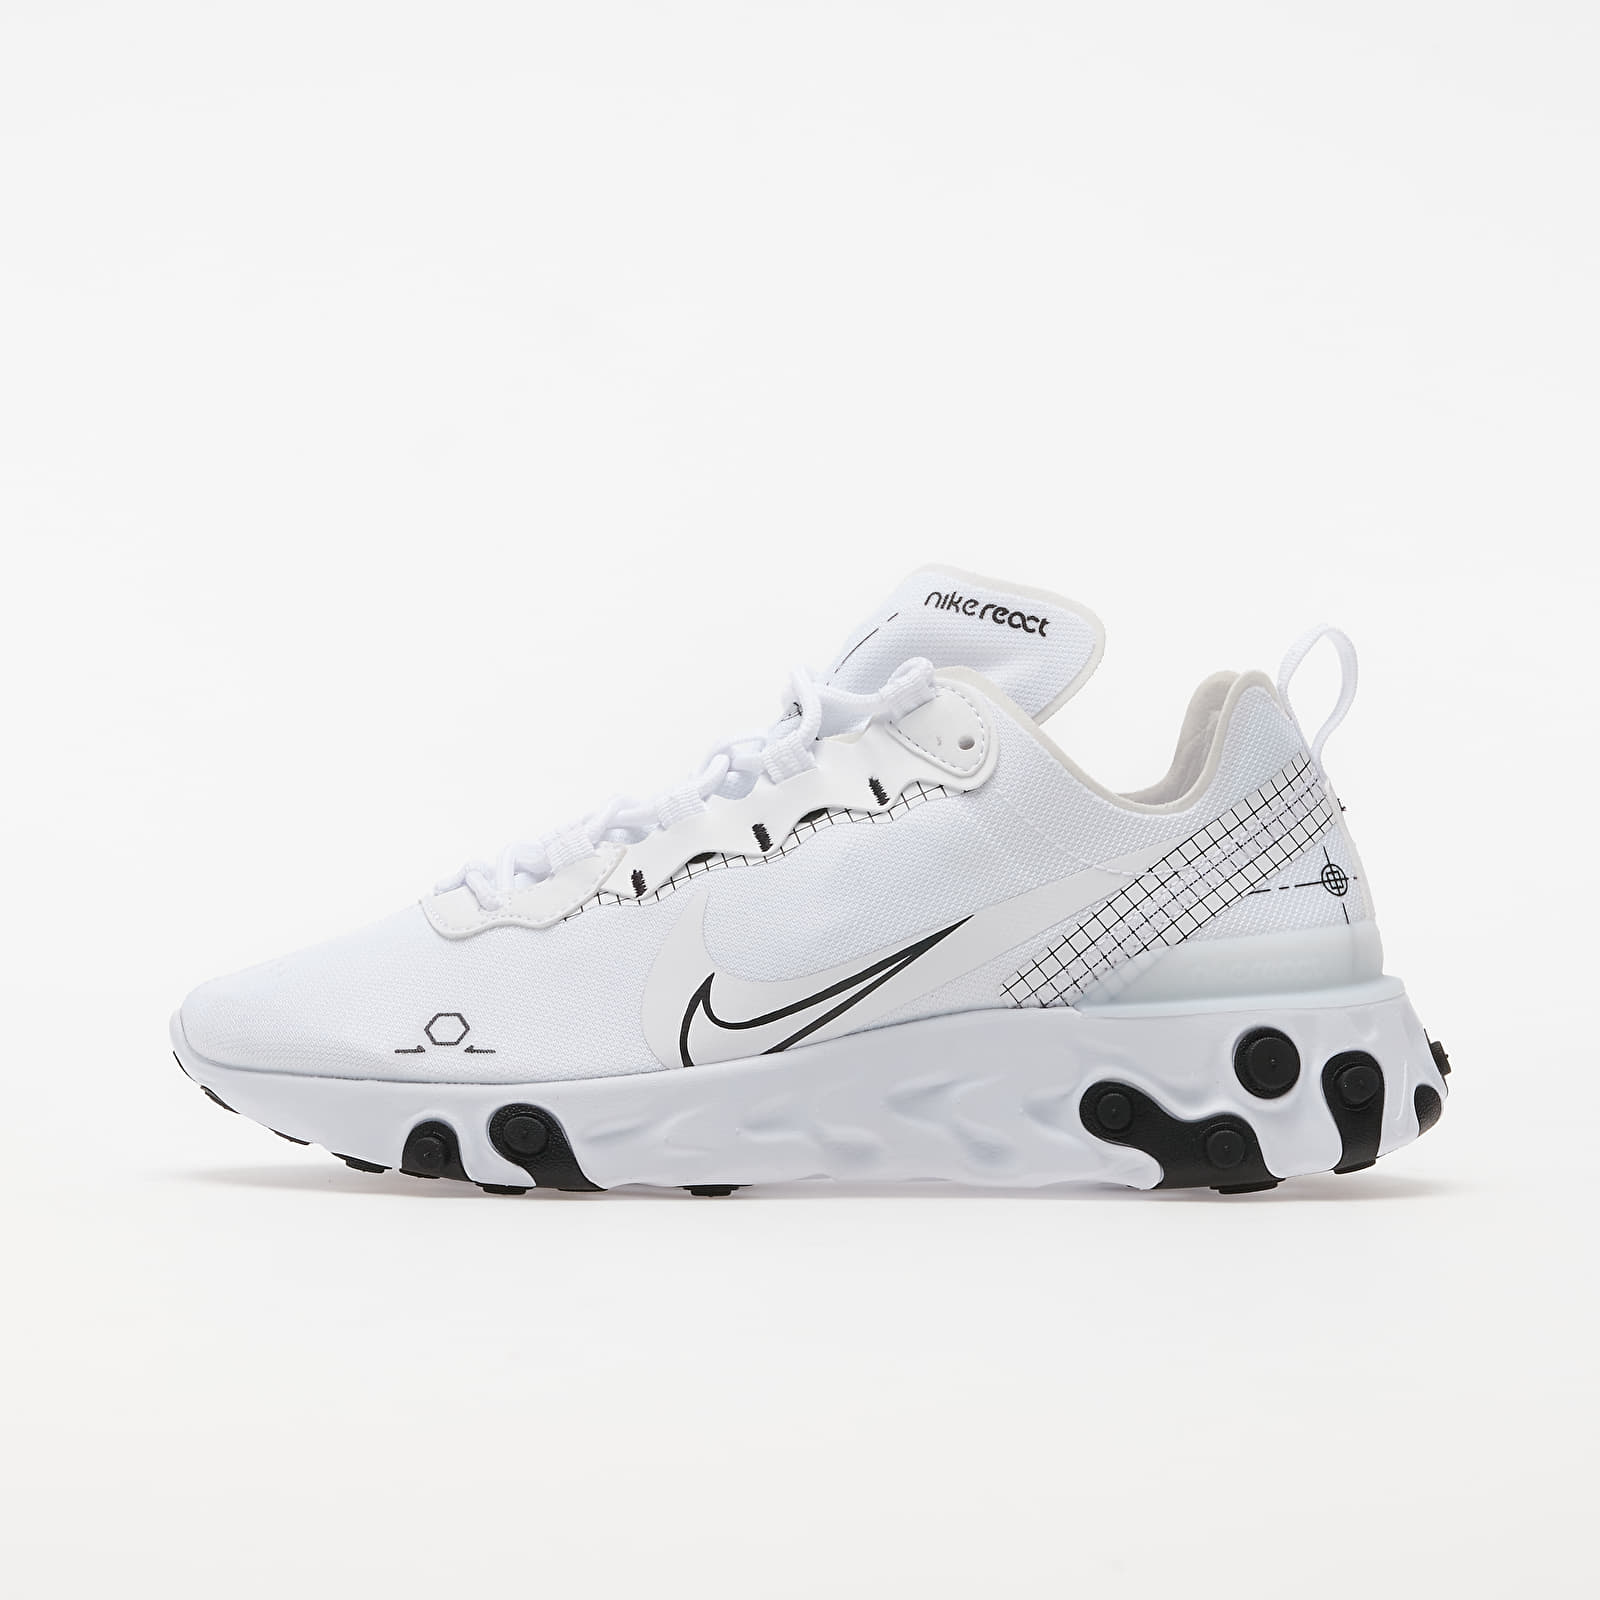 Men's shoes Nike React Element 55 White/ Black